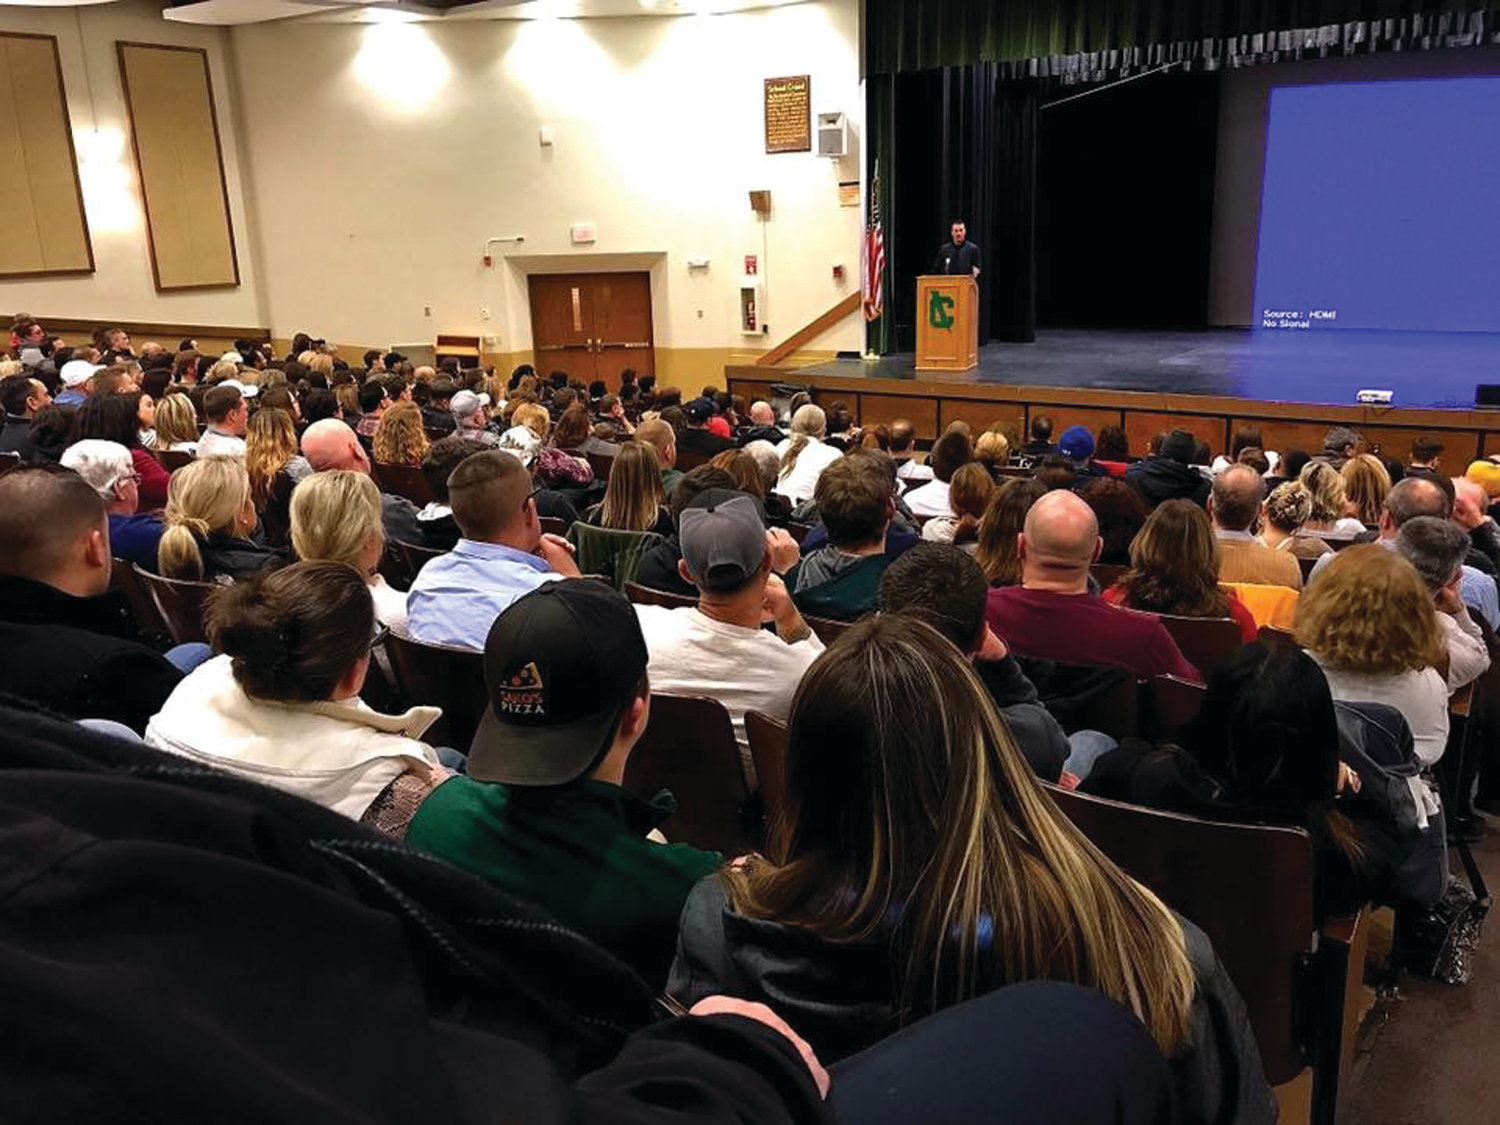 FULL HOUSE: Students and other members of the community filled Cranston High School East's auditorium for Chris Herren's presentation last week.